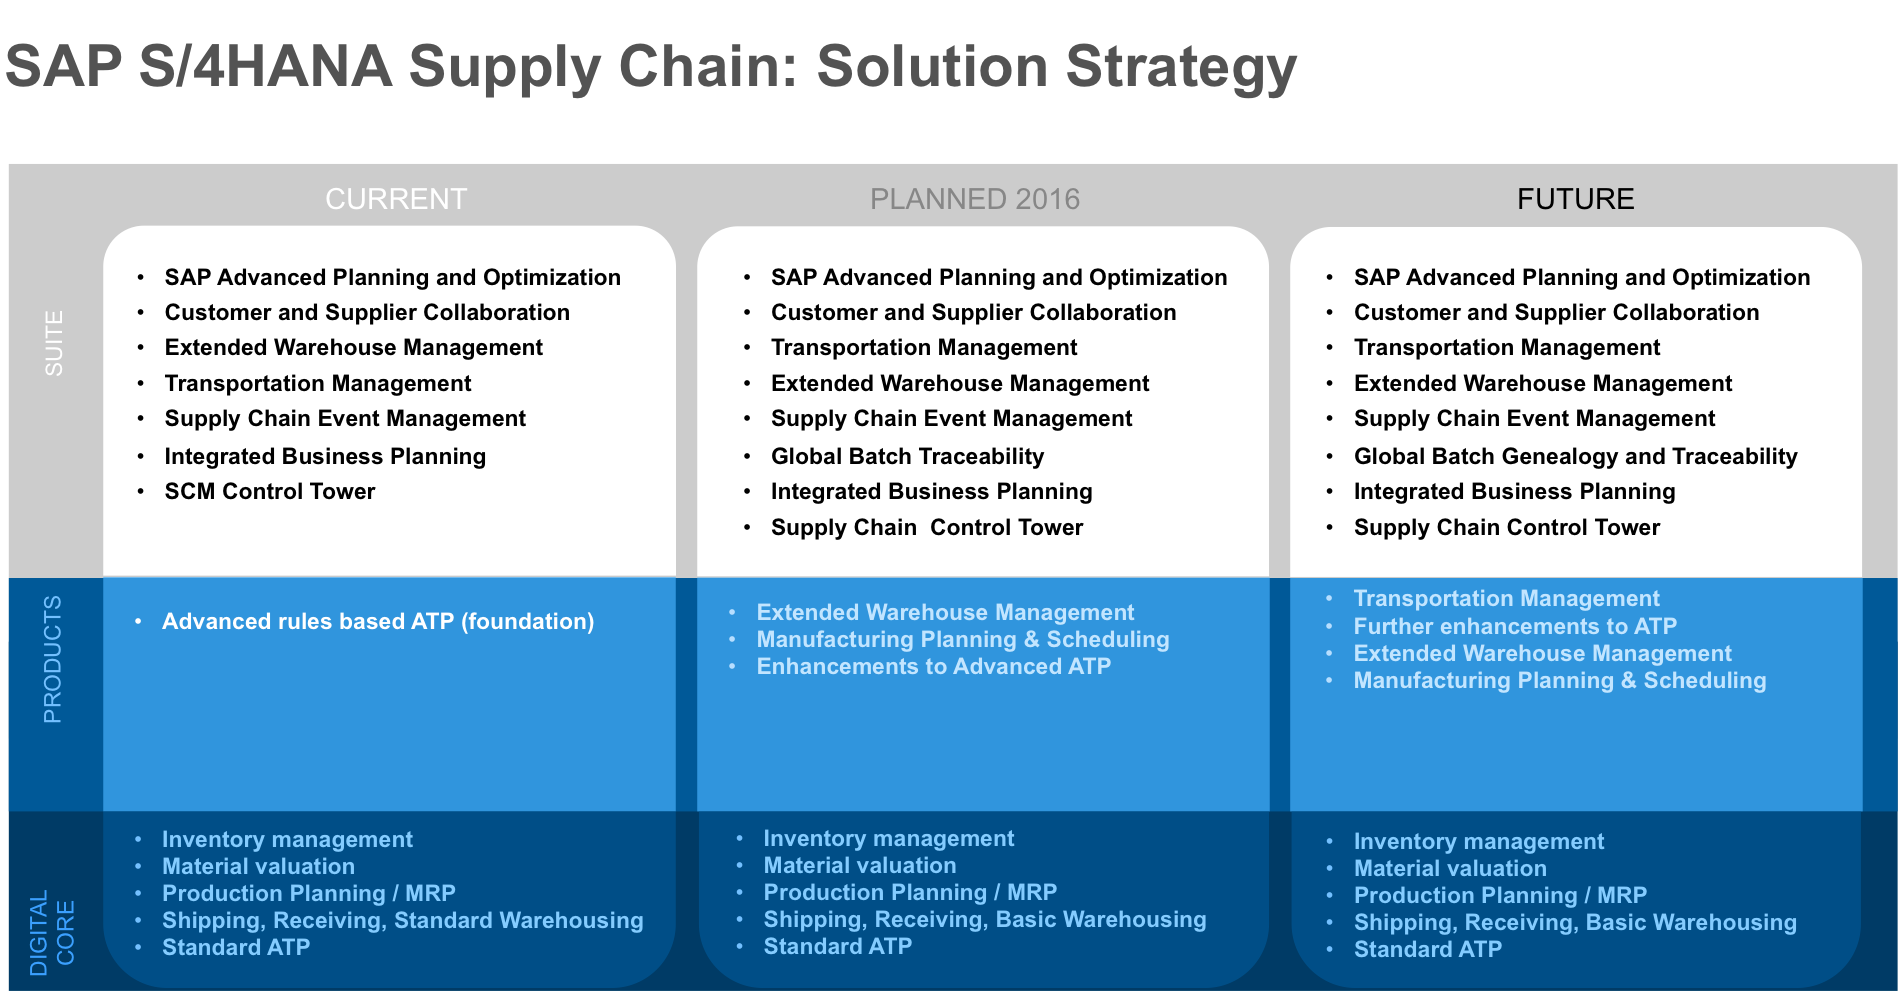 FAQ document Available on Strategy and roadmap for SAP S/4HANA and